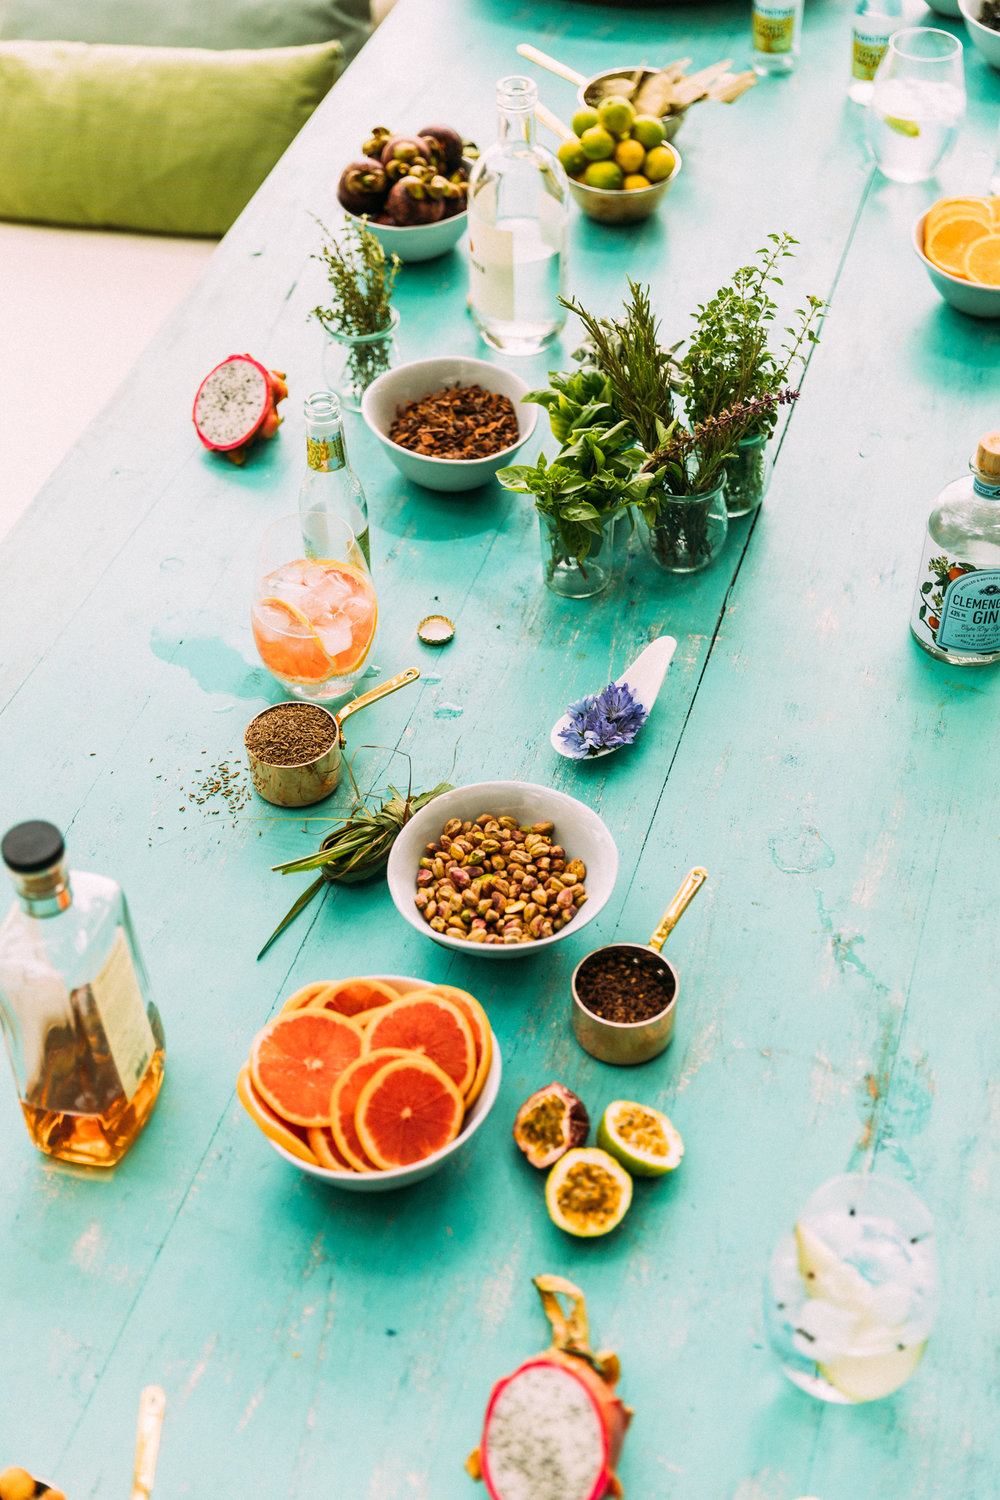 A bounty of beautiful ingredients adorn the table ready for a craft gin tasting on North Island, Seychelles